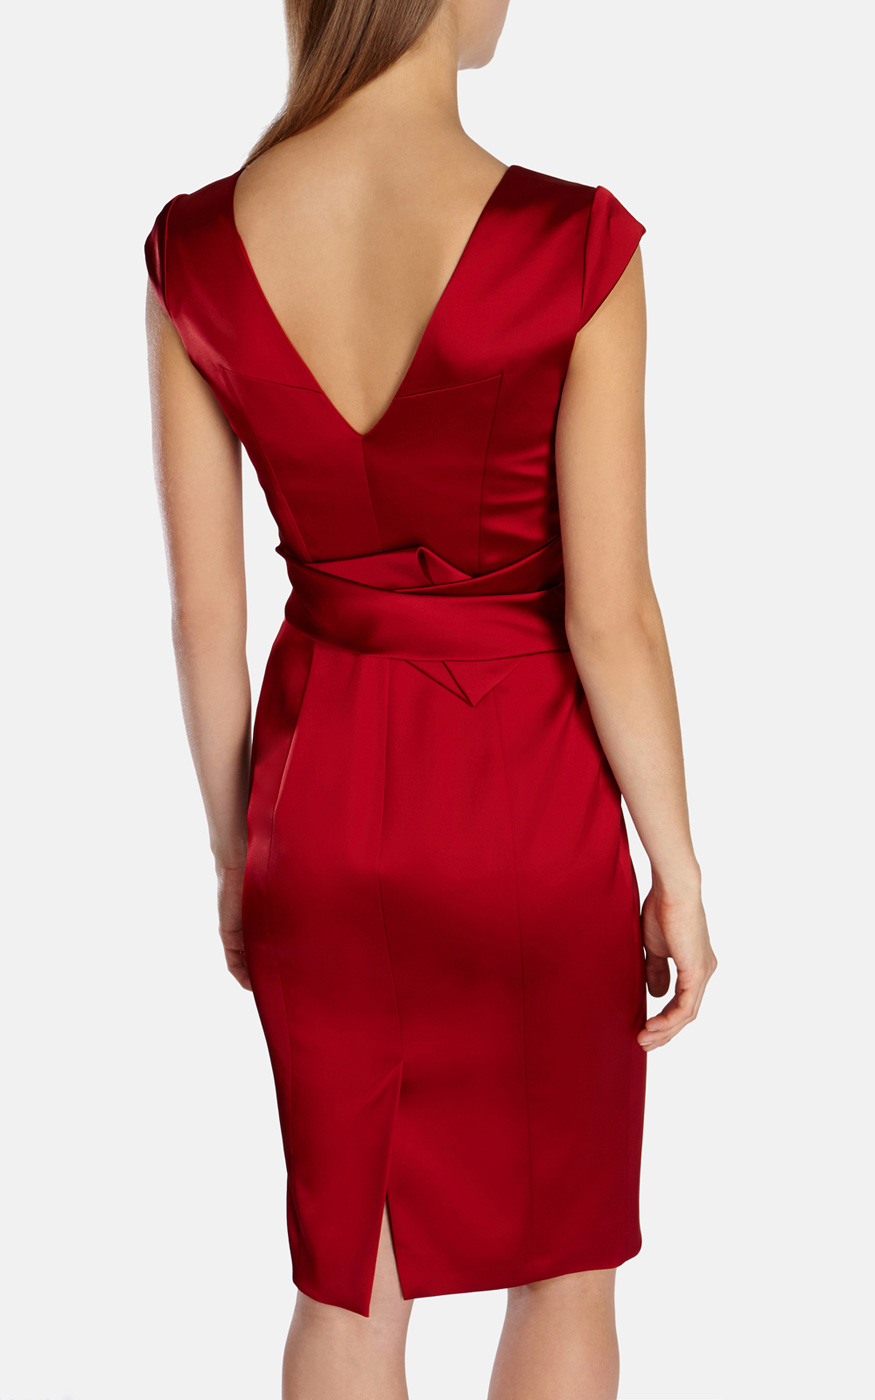 Karen Millen Satin Pencil Dress In Red Lyst